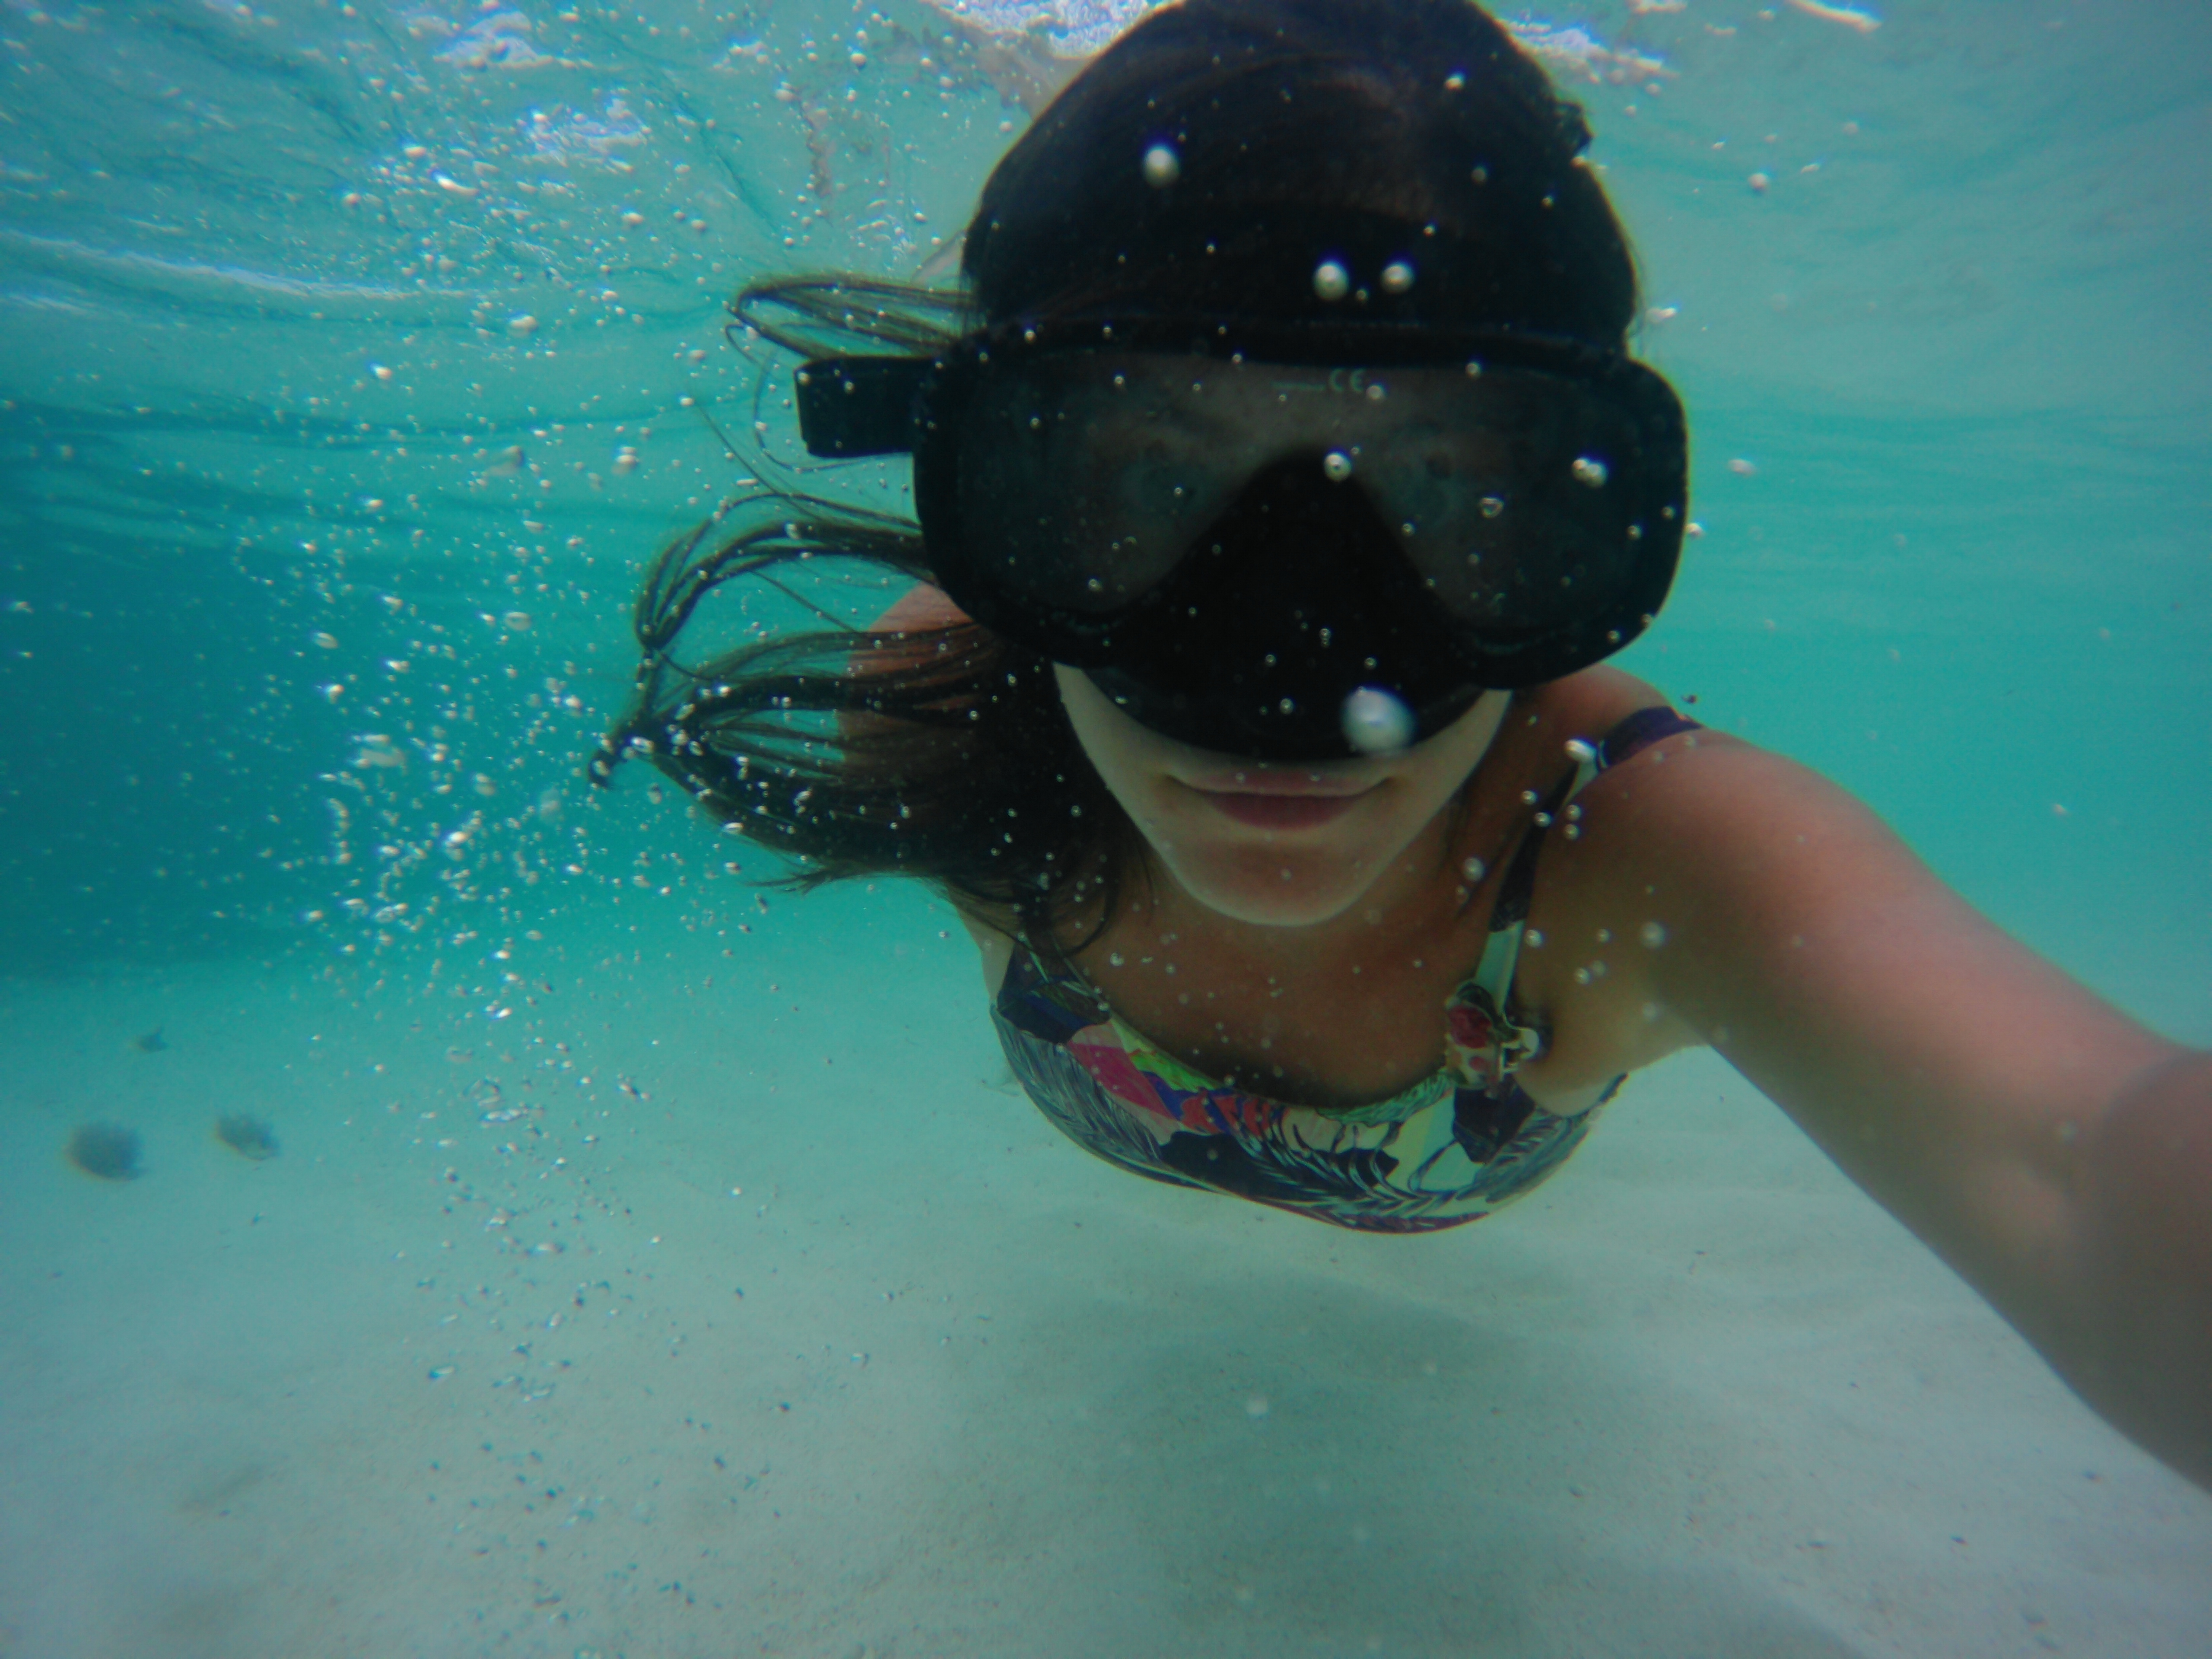 A person snorkelling